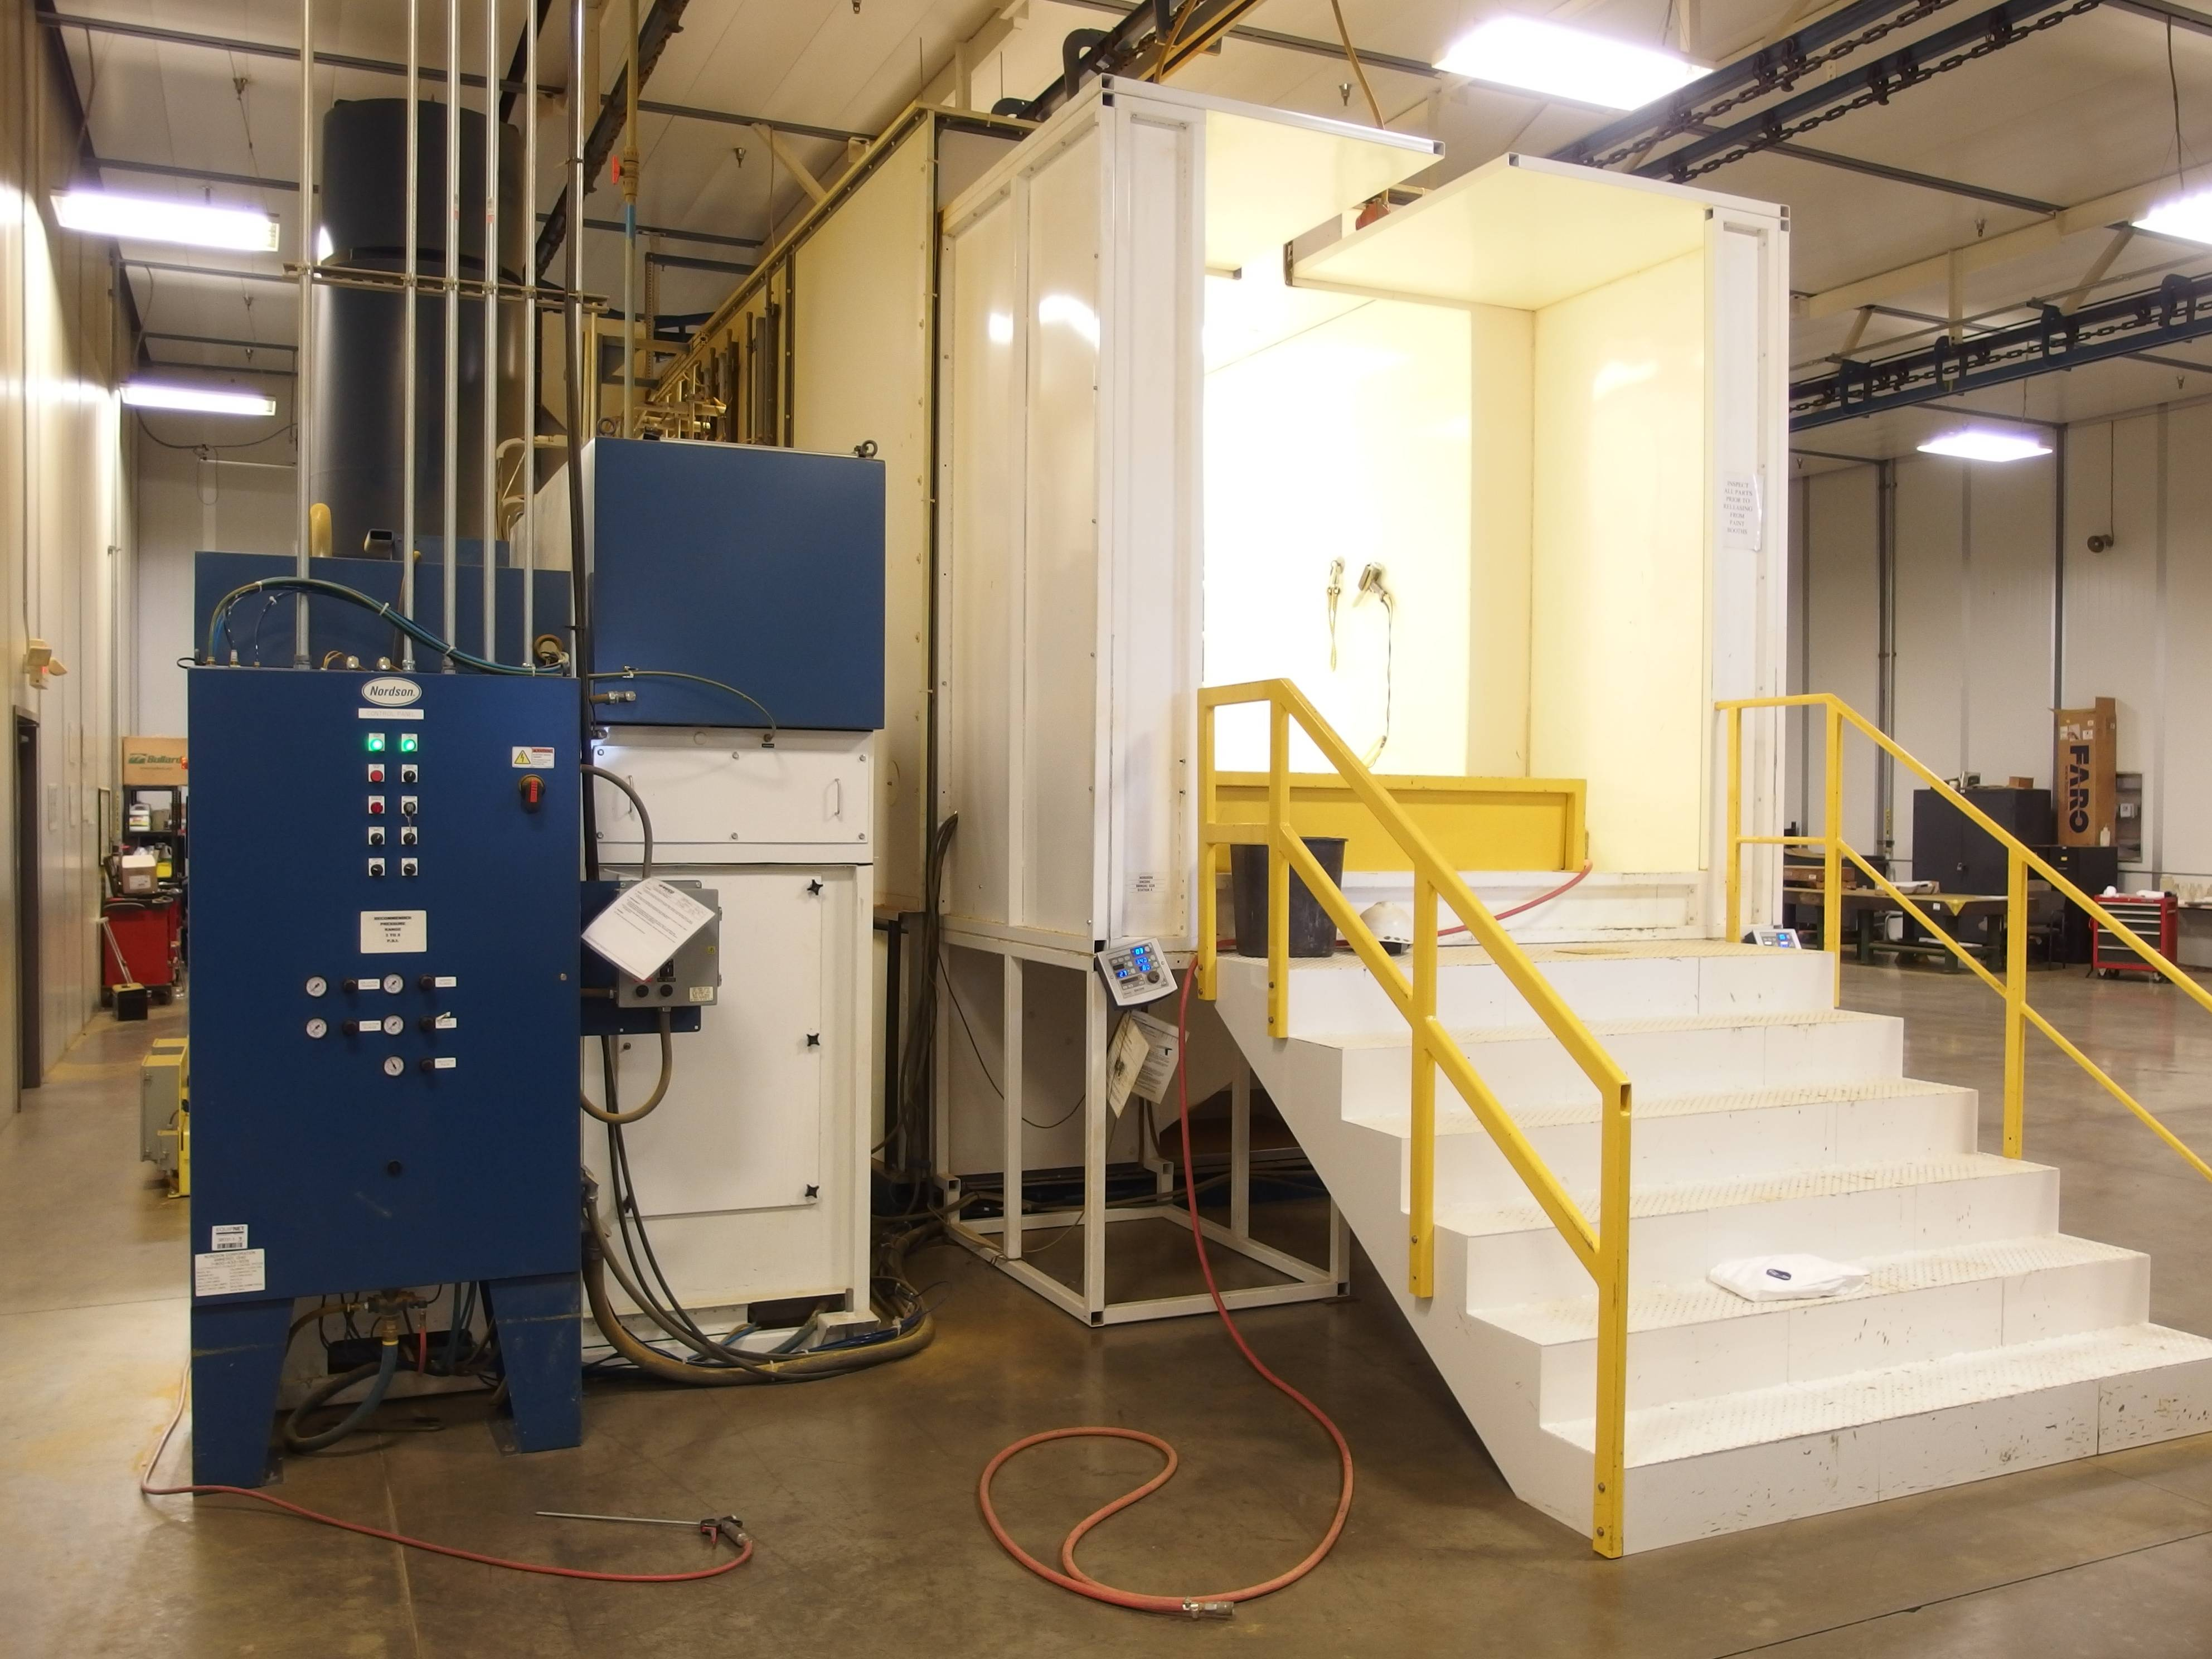 Nordson Automatic Electrostatic Powder Spray Booth with Spectrum II Powder Feed Center